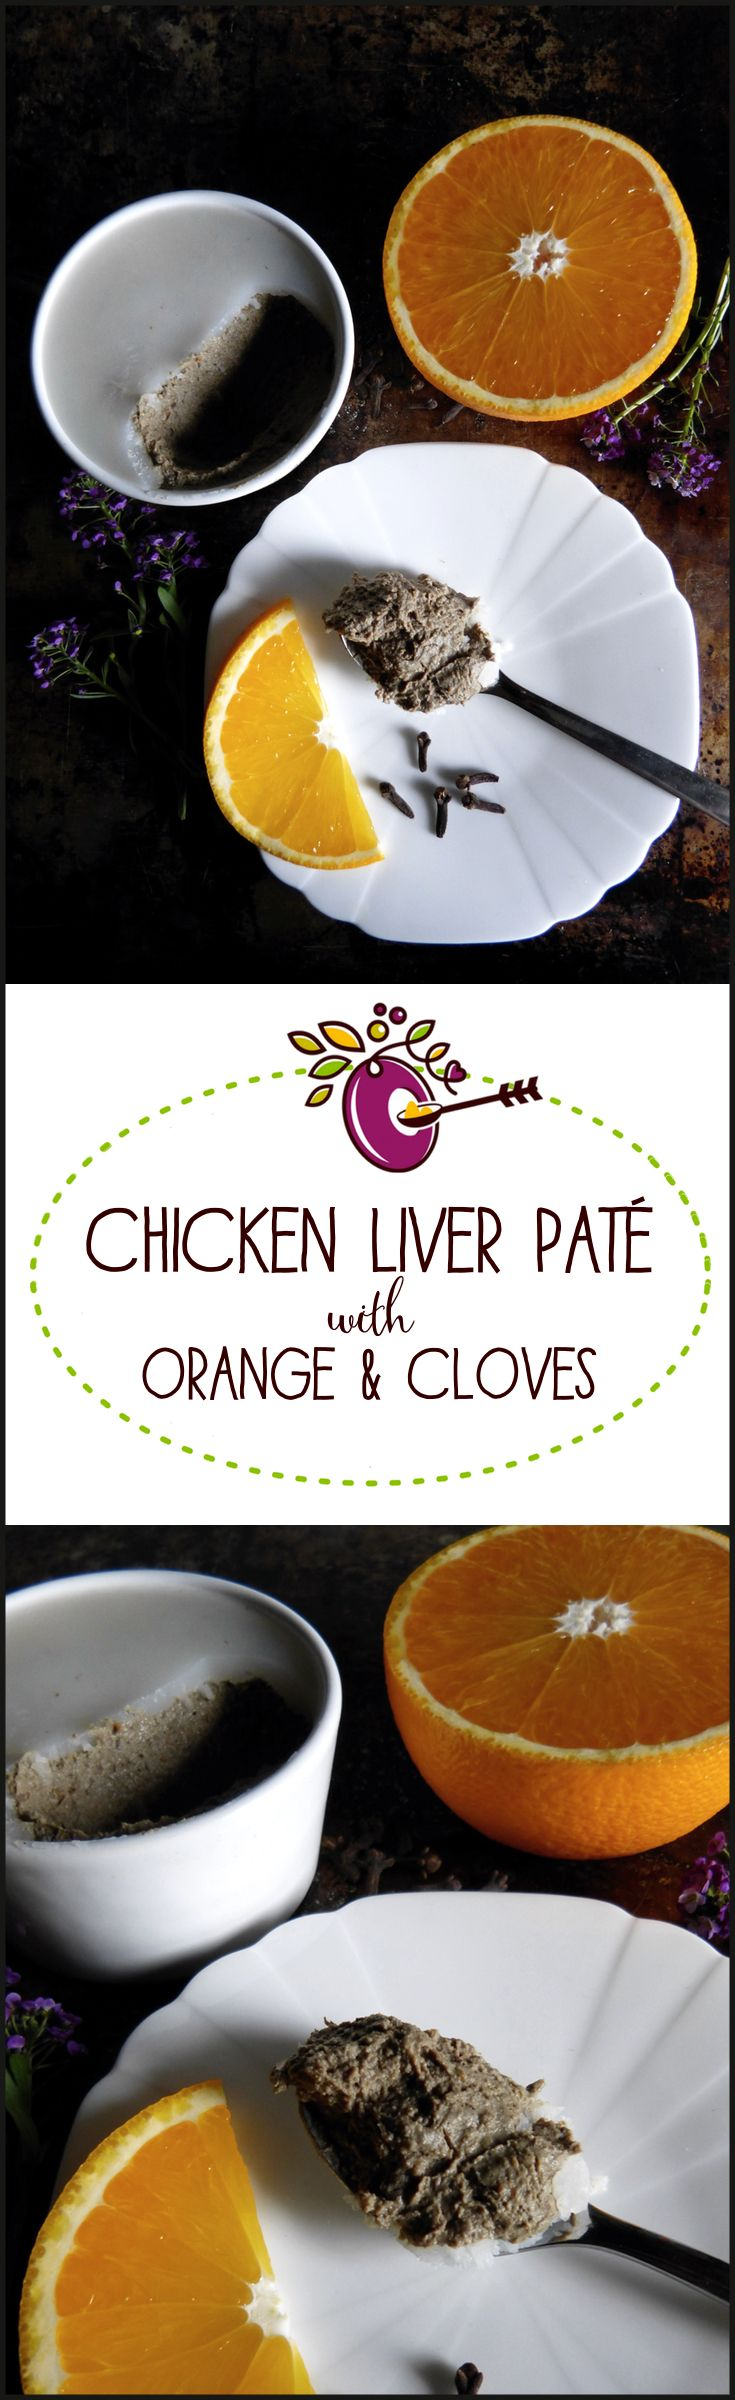 Chicken Liver Patè with Orange and Cloves -sublime! And so good for you. Paleo AIP recipe, just 4 ingredients and easy to make. Click through for this one!